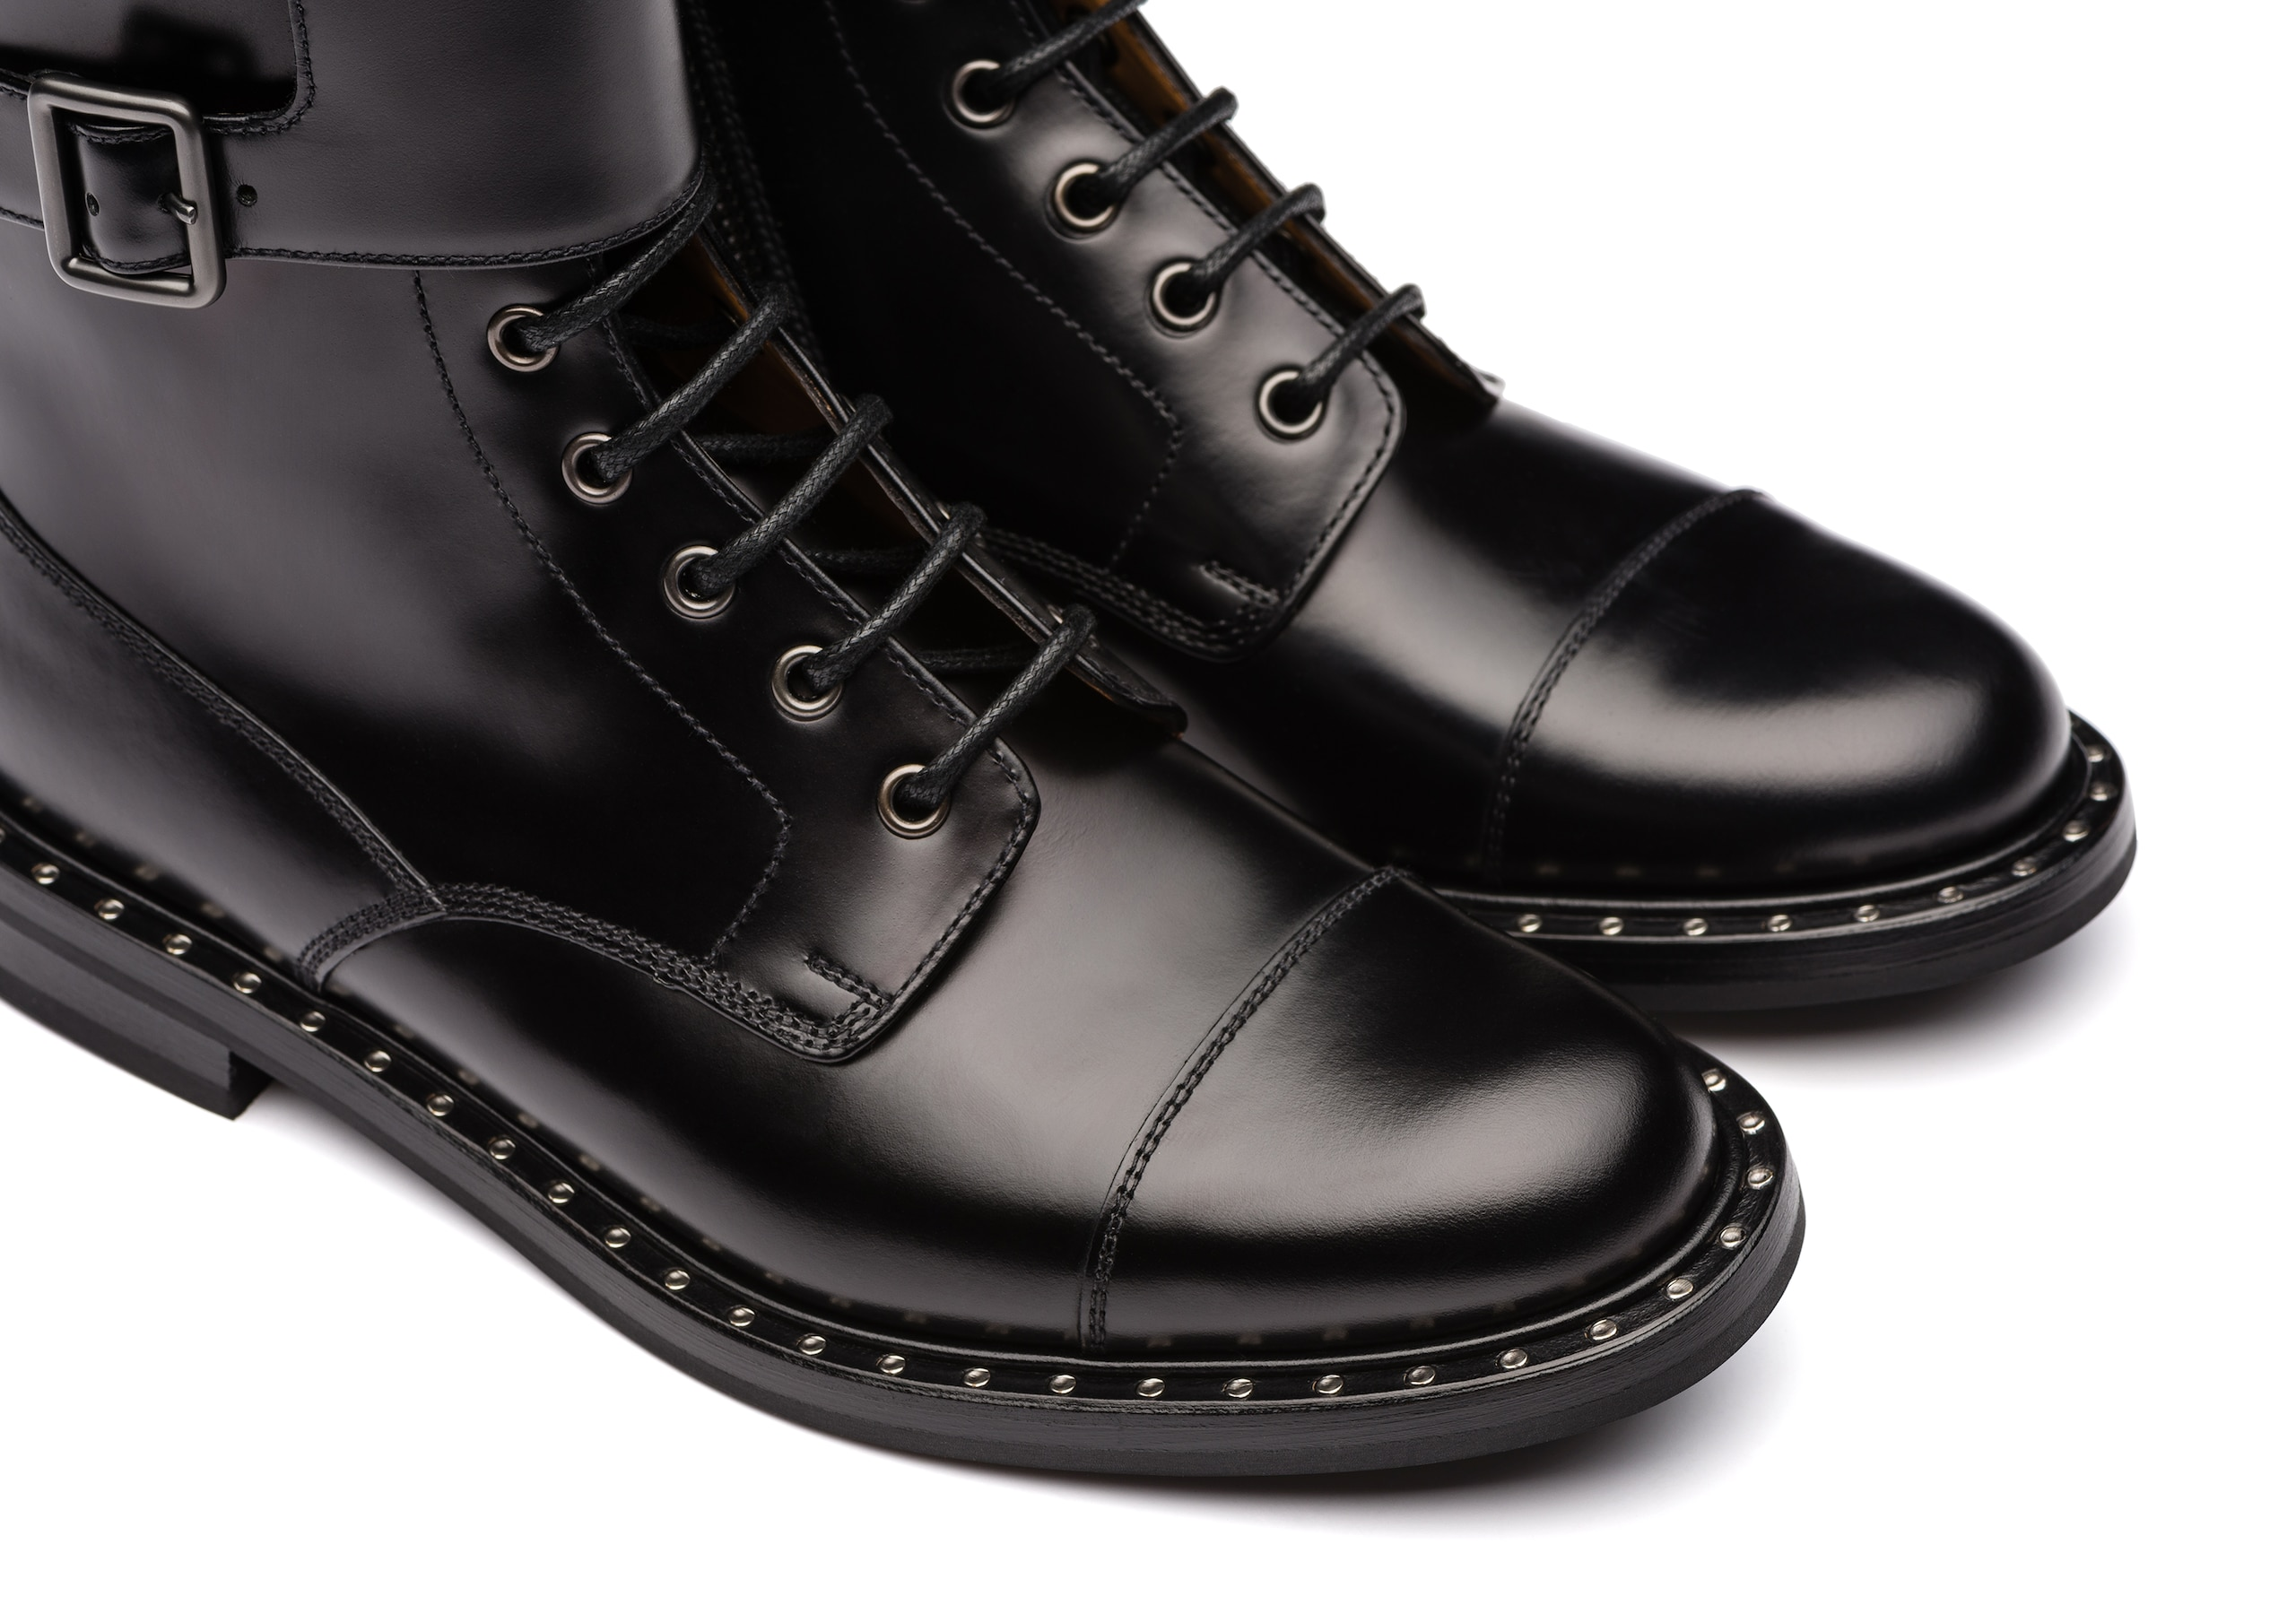 Stefy met Church's Rois Calf Lace-Up and Monk Boot Black